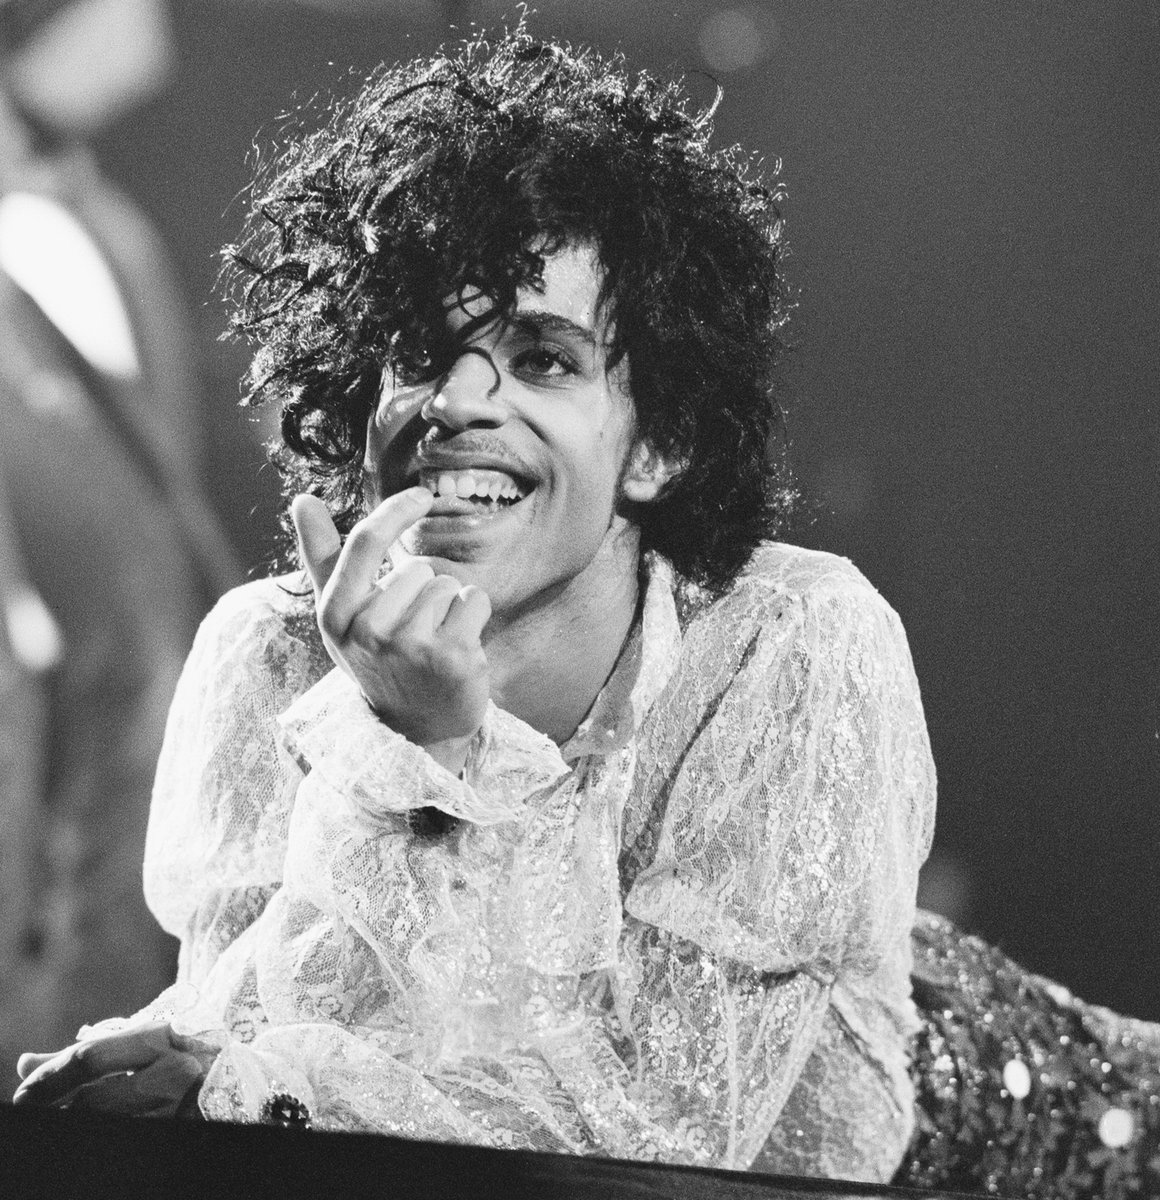 """As 2020 draws to a close, Prince's classic soundtrack """"Purple Rain"""" has once again entered the @billboard 200 at No. 161. This is the fourth time the album has climbed the @billboardcharts. In 1984, it spent 24 weeks at No. 1 and charted for a total of 122 weeks."""